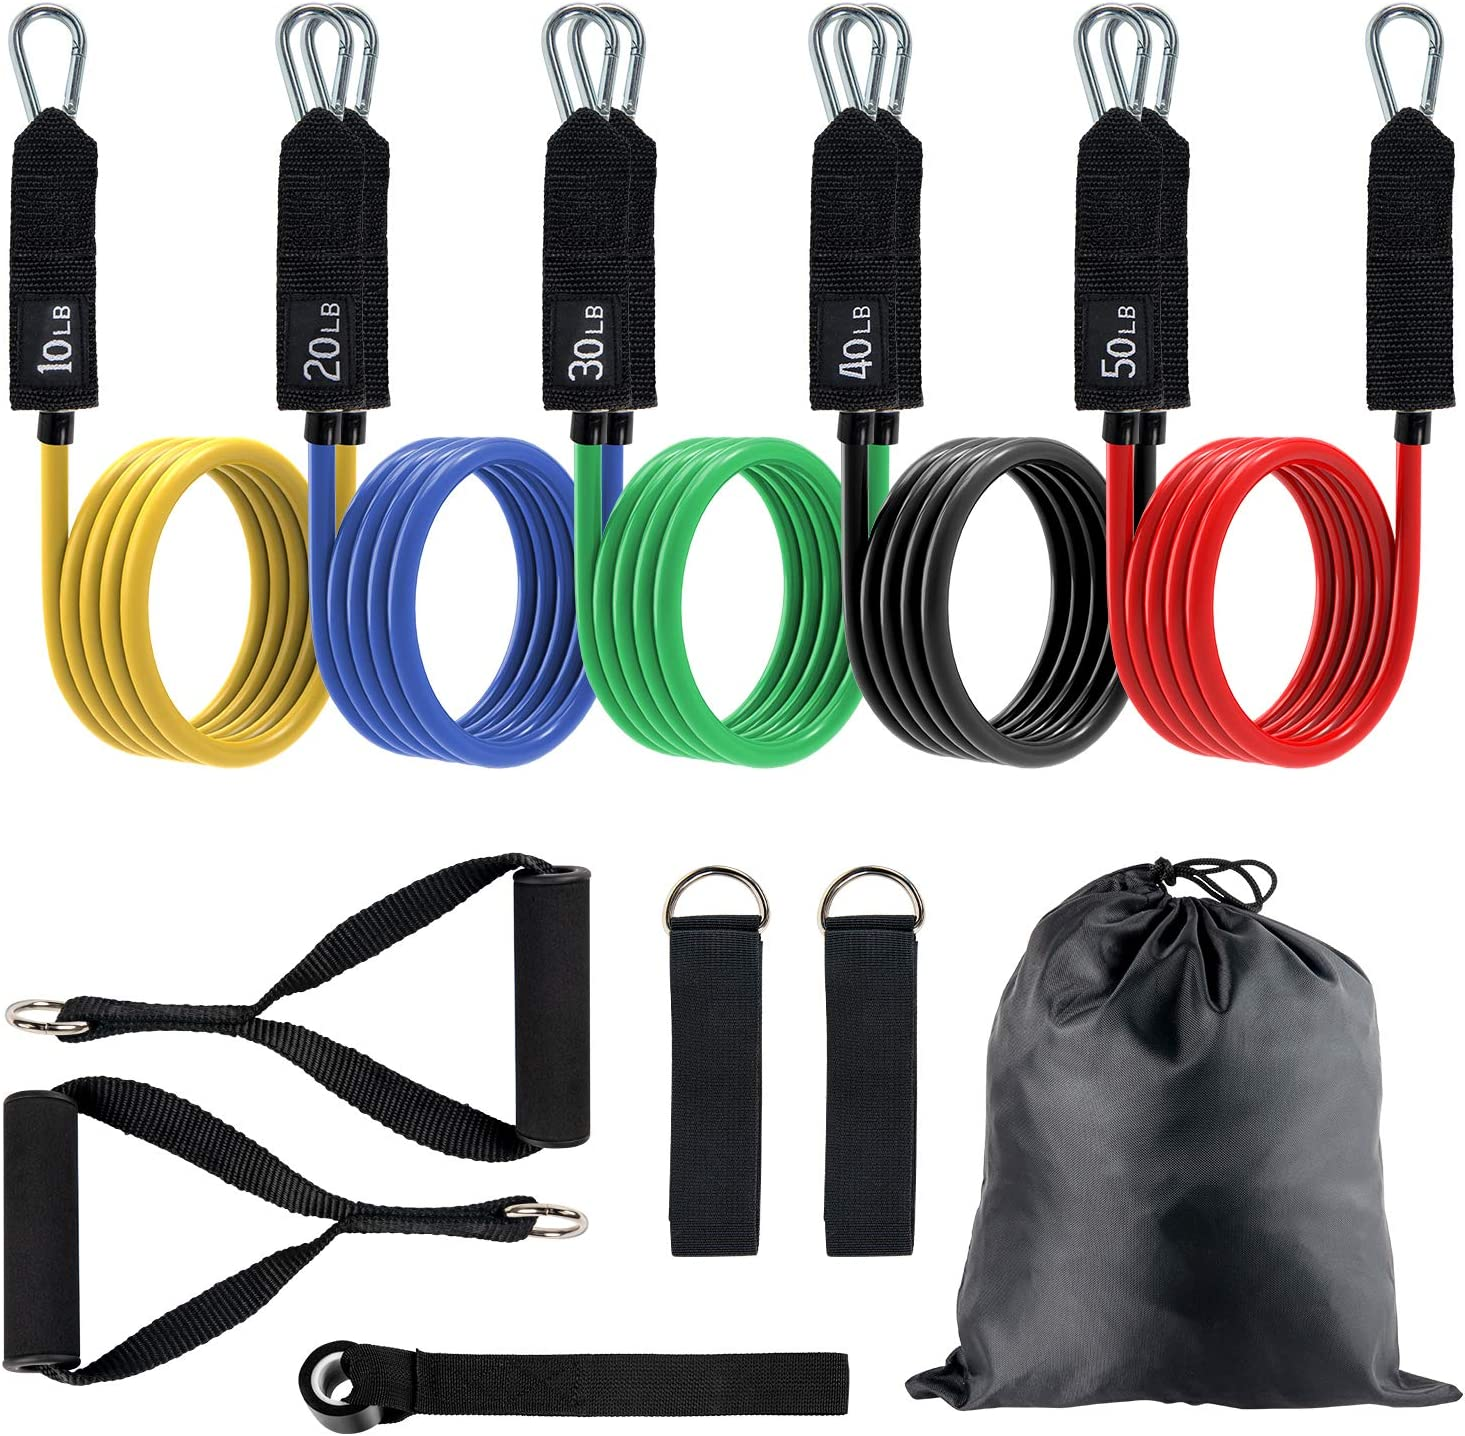 Stackable Up to 150 lbs Physical Therapy Home Workout Exercise Bands with Door Anchor /& Ankle Straps for Resistance Training Toncur Resistance Bands Set with Handles